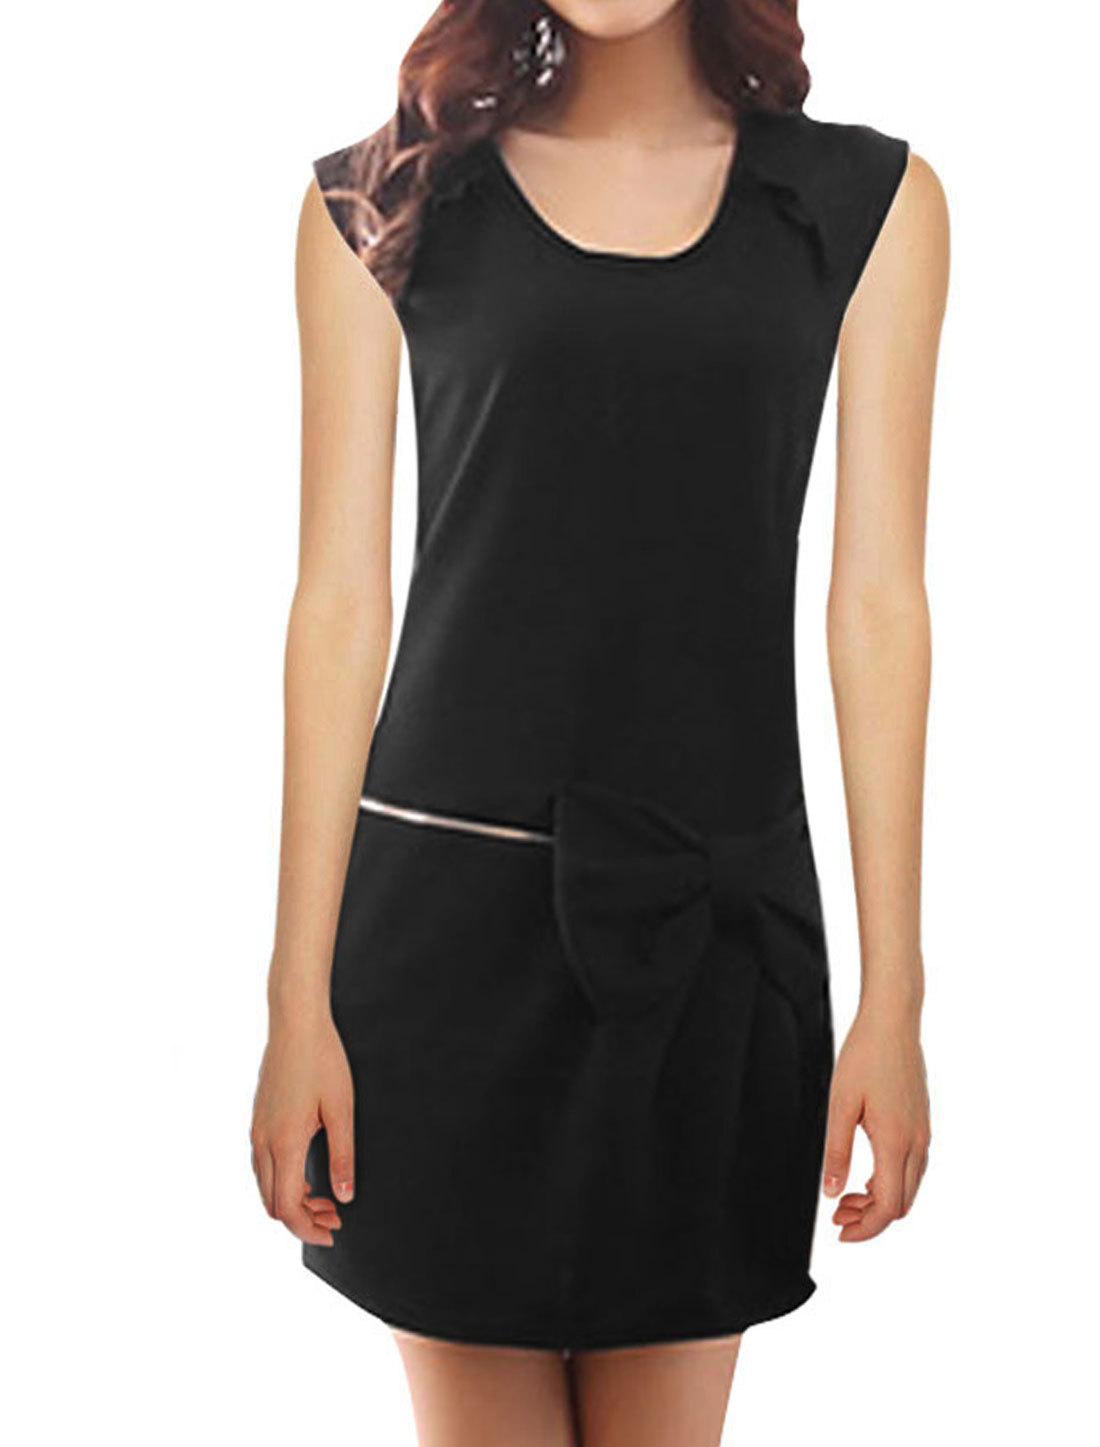 Ladies Metal Zipper Bowknots Sleeveless Slim Fashion Dress Black S